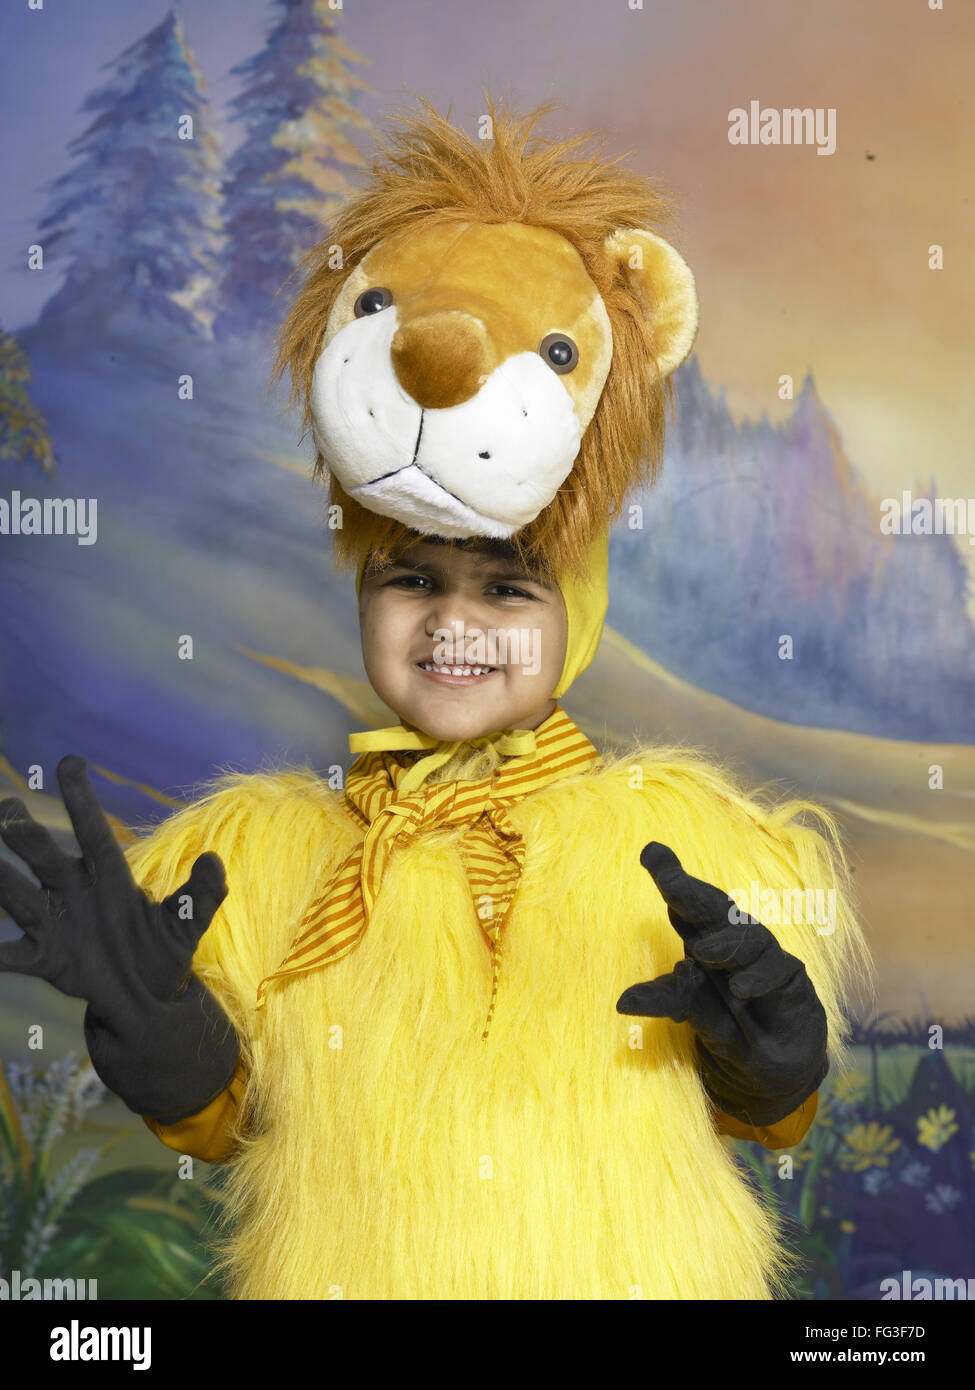 c3cc7ed1b South Asian Indian boy dressed as lion performing fancy dress competition  on stage in nursery school MR